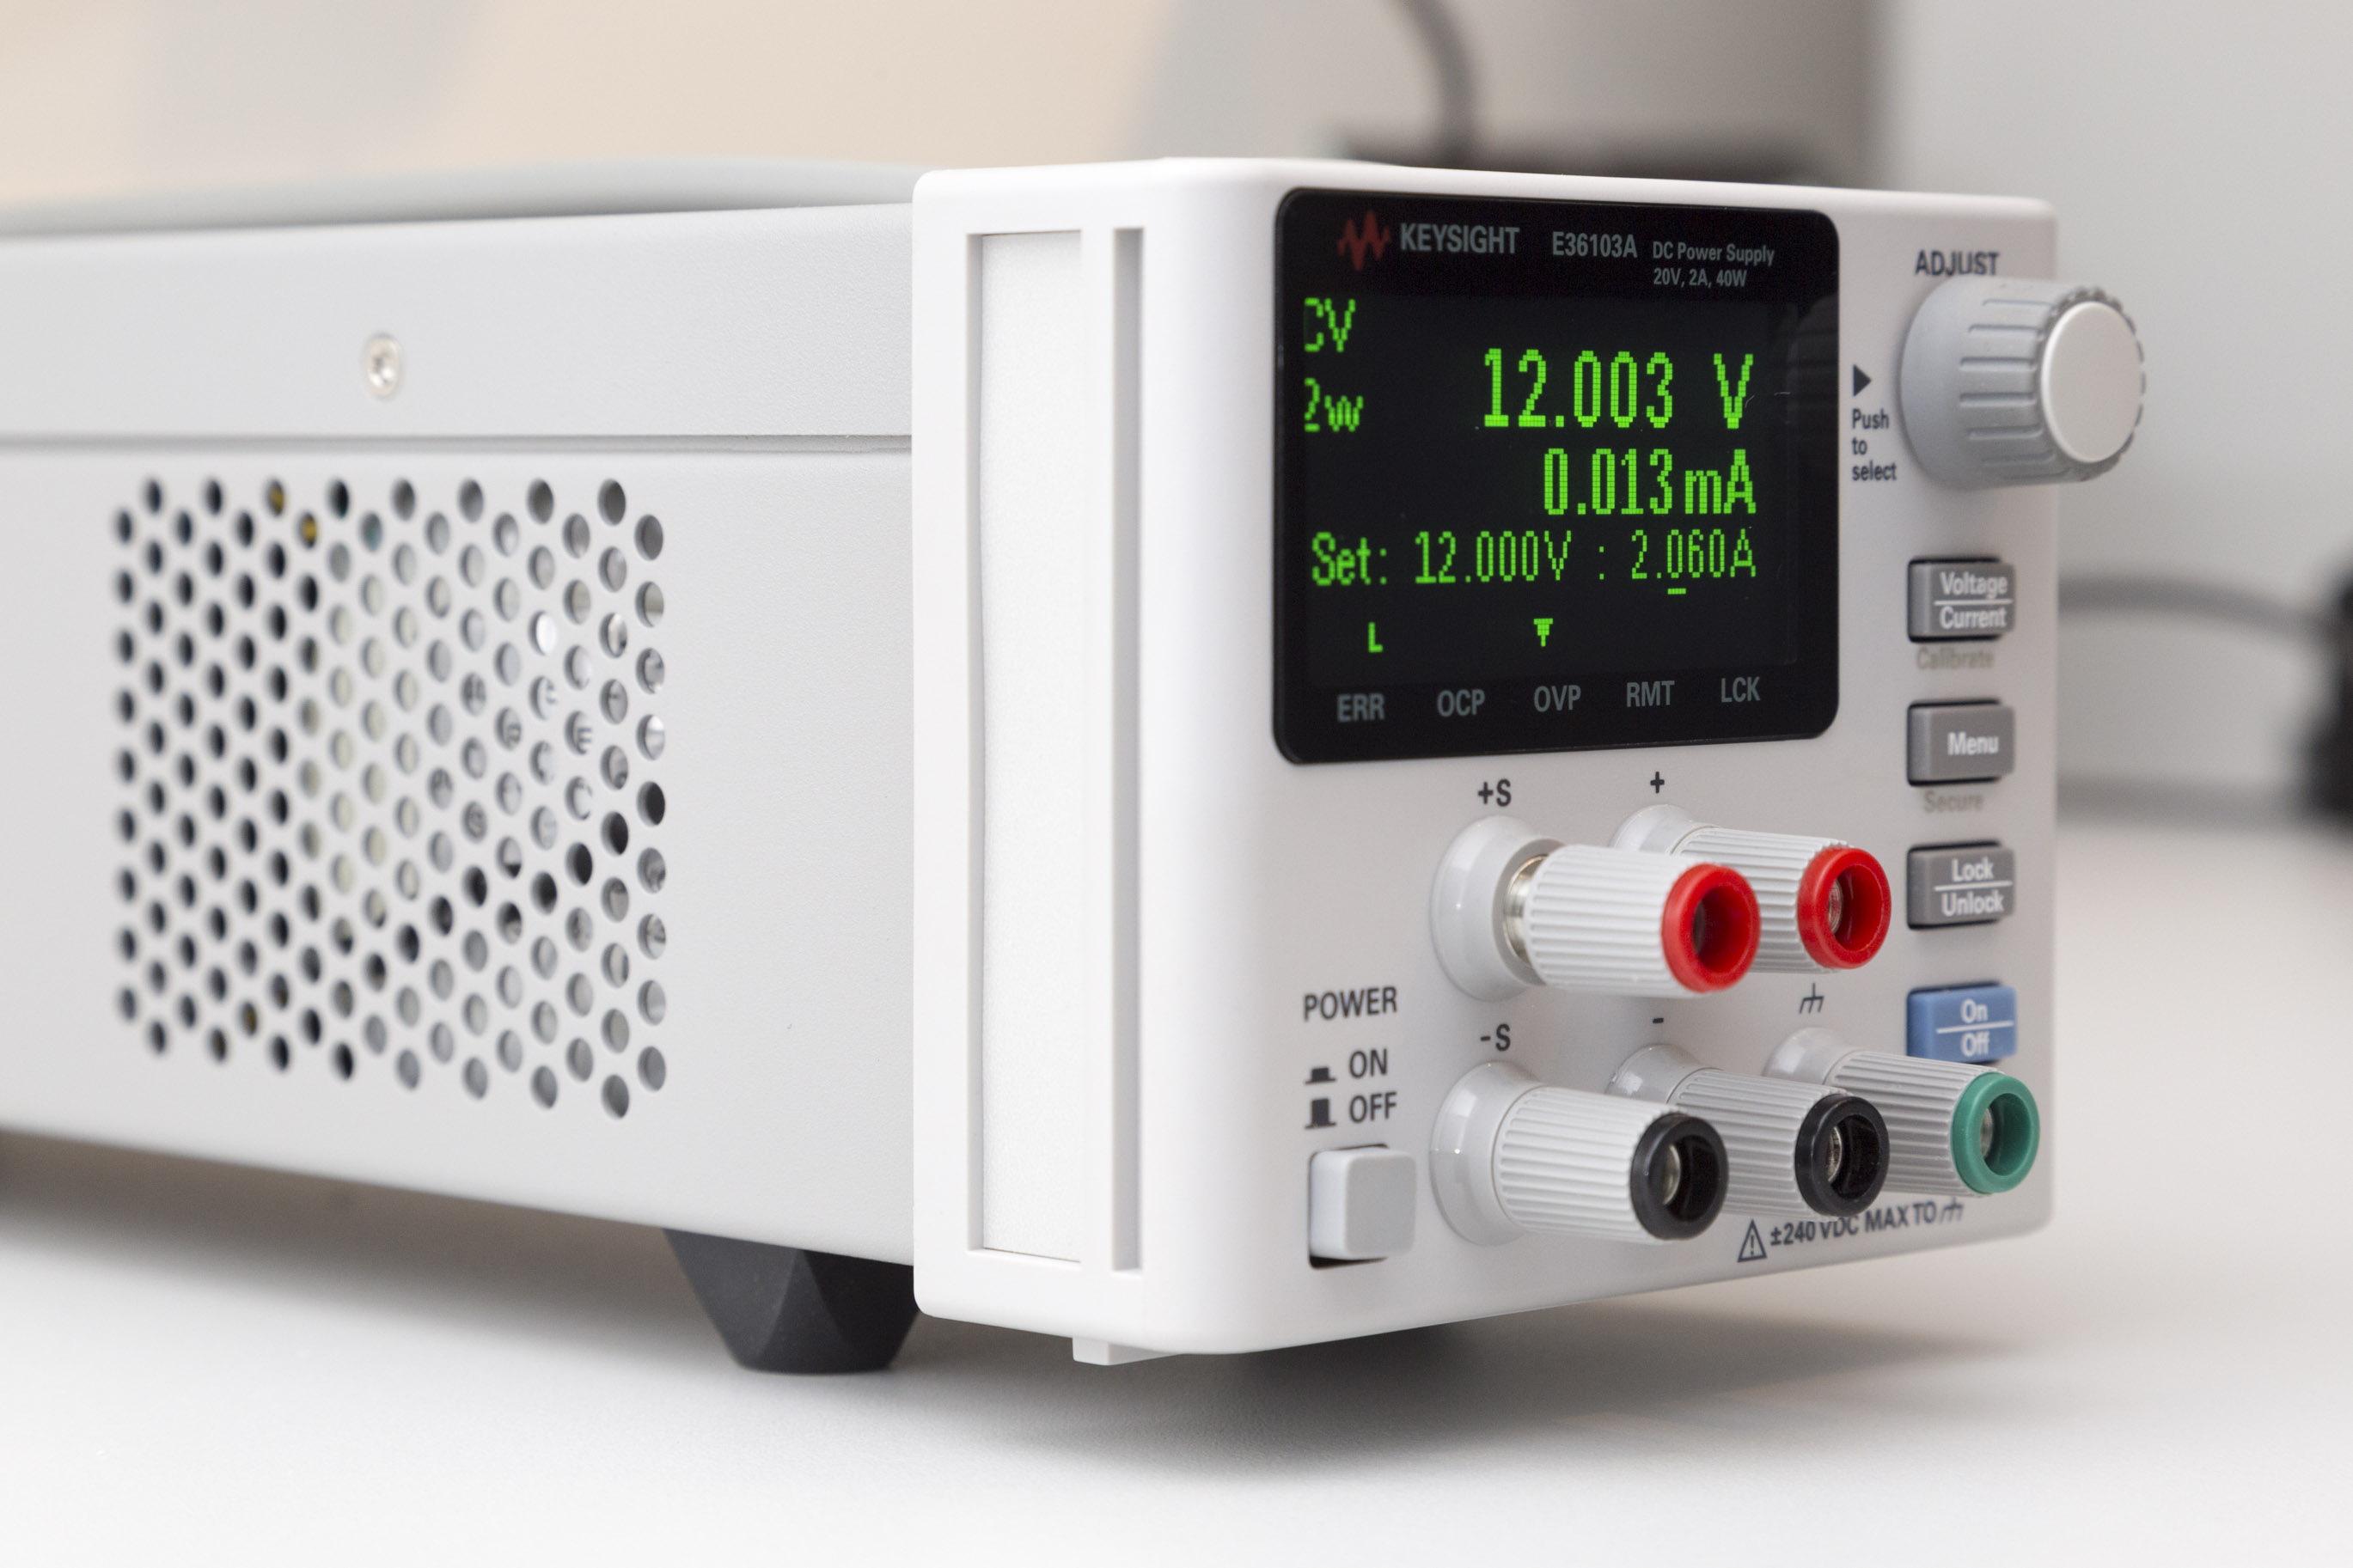 Keysight E36103a Lab Power Supply Review Soldernerd